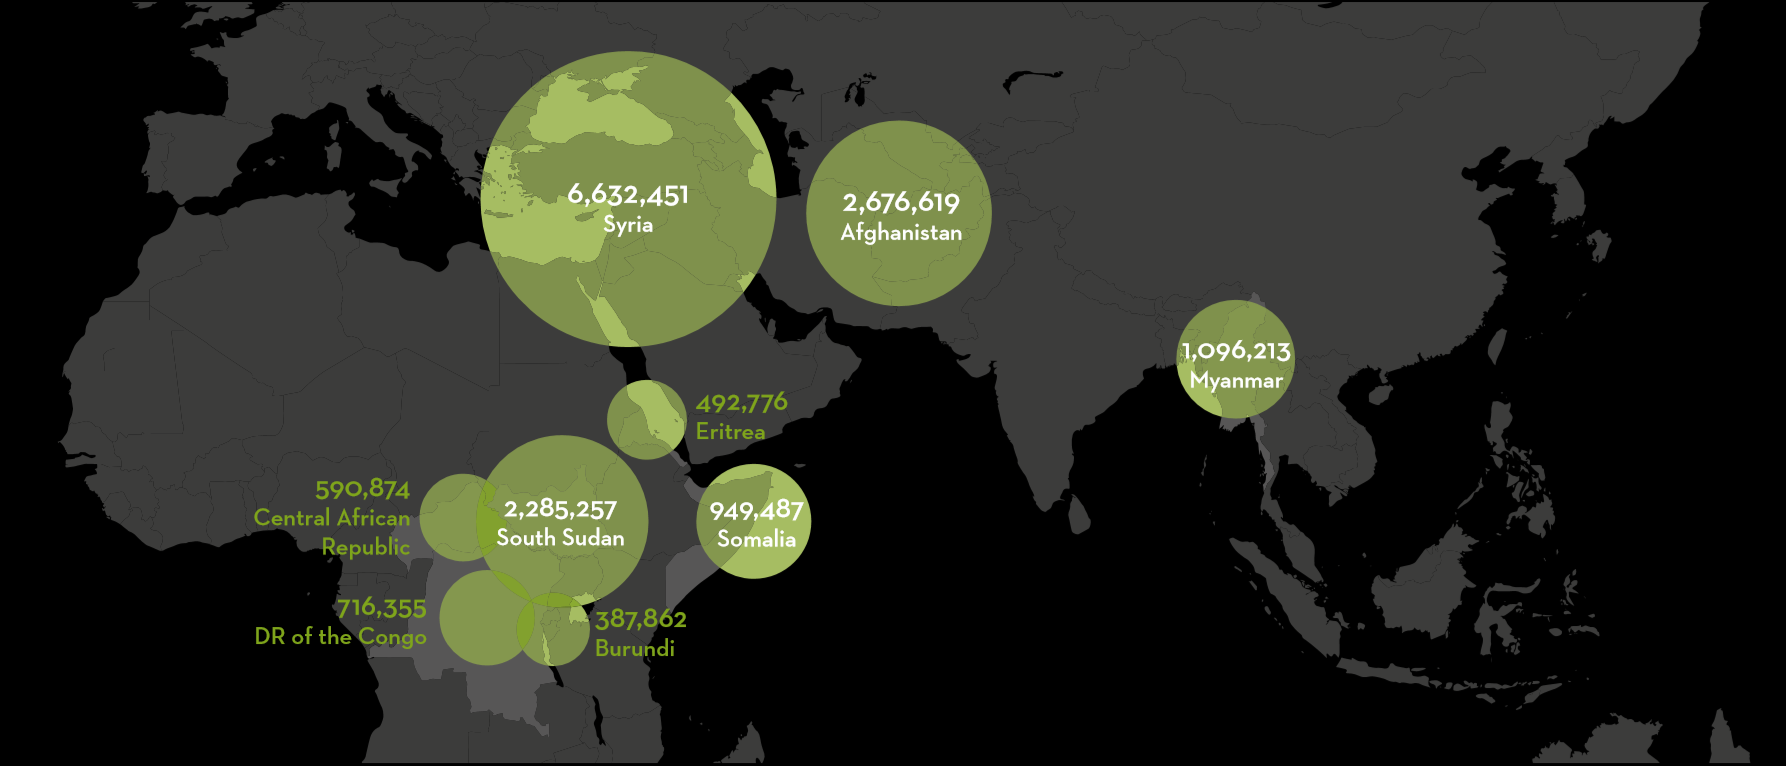 Total number of forcibly displaced people by origin country 2018